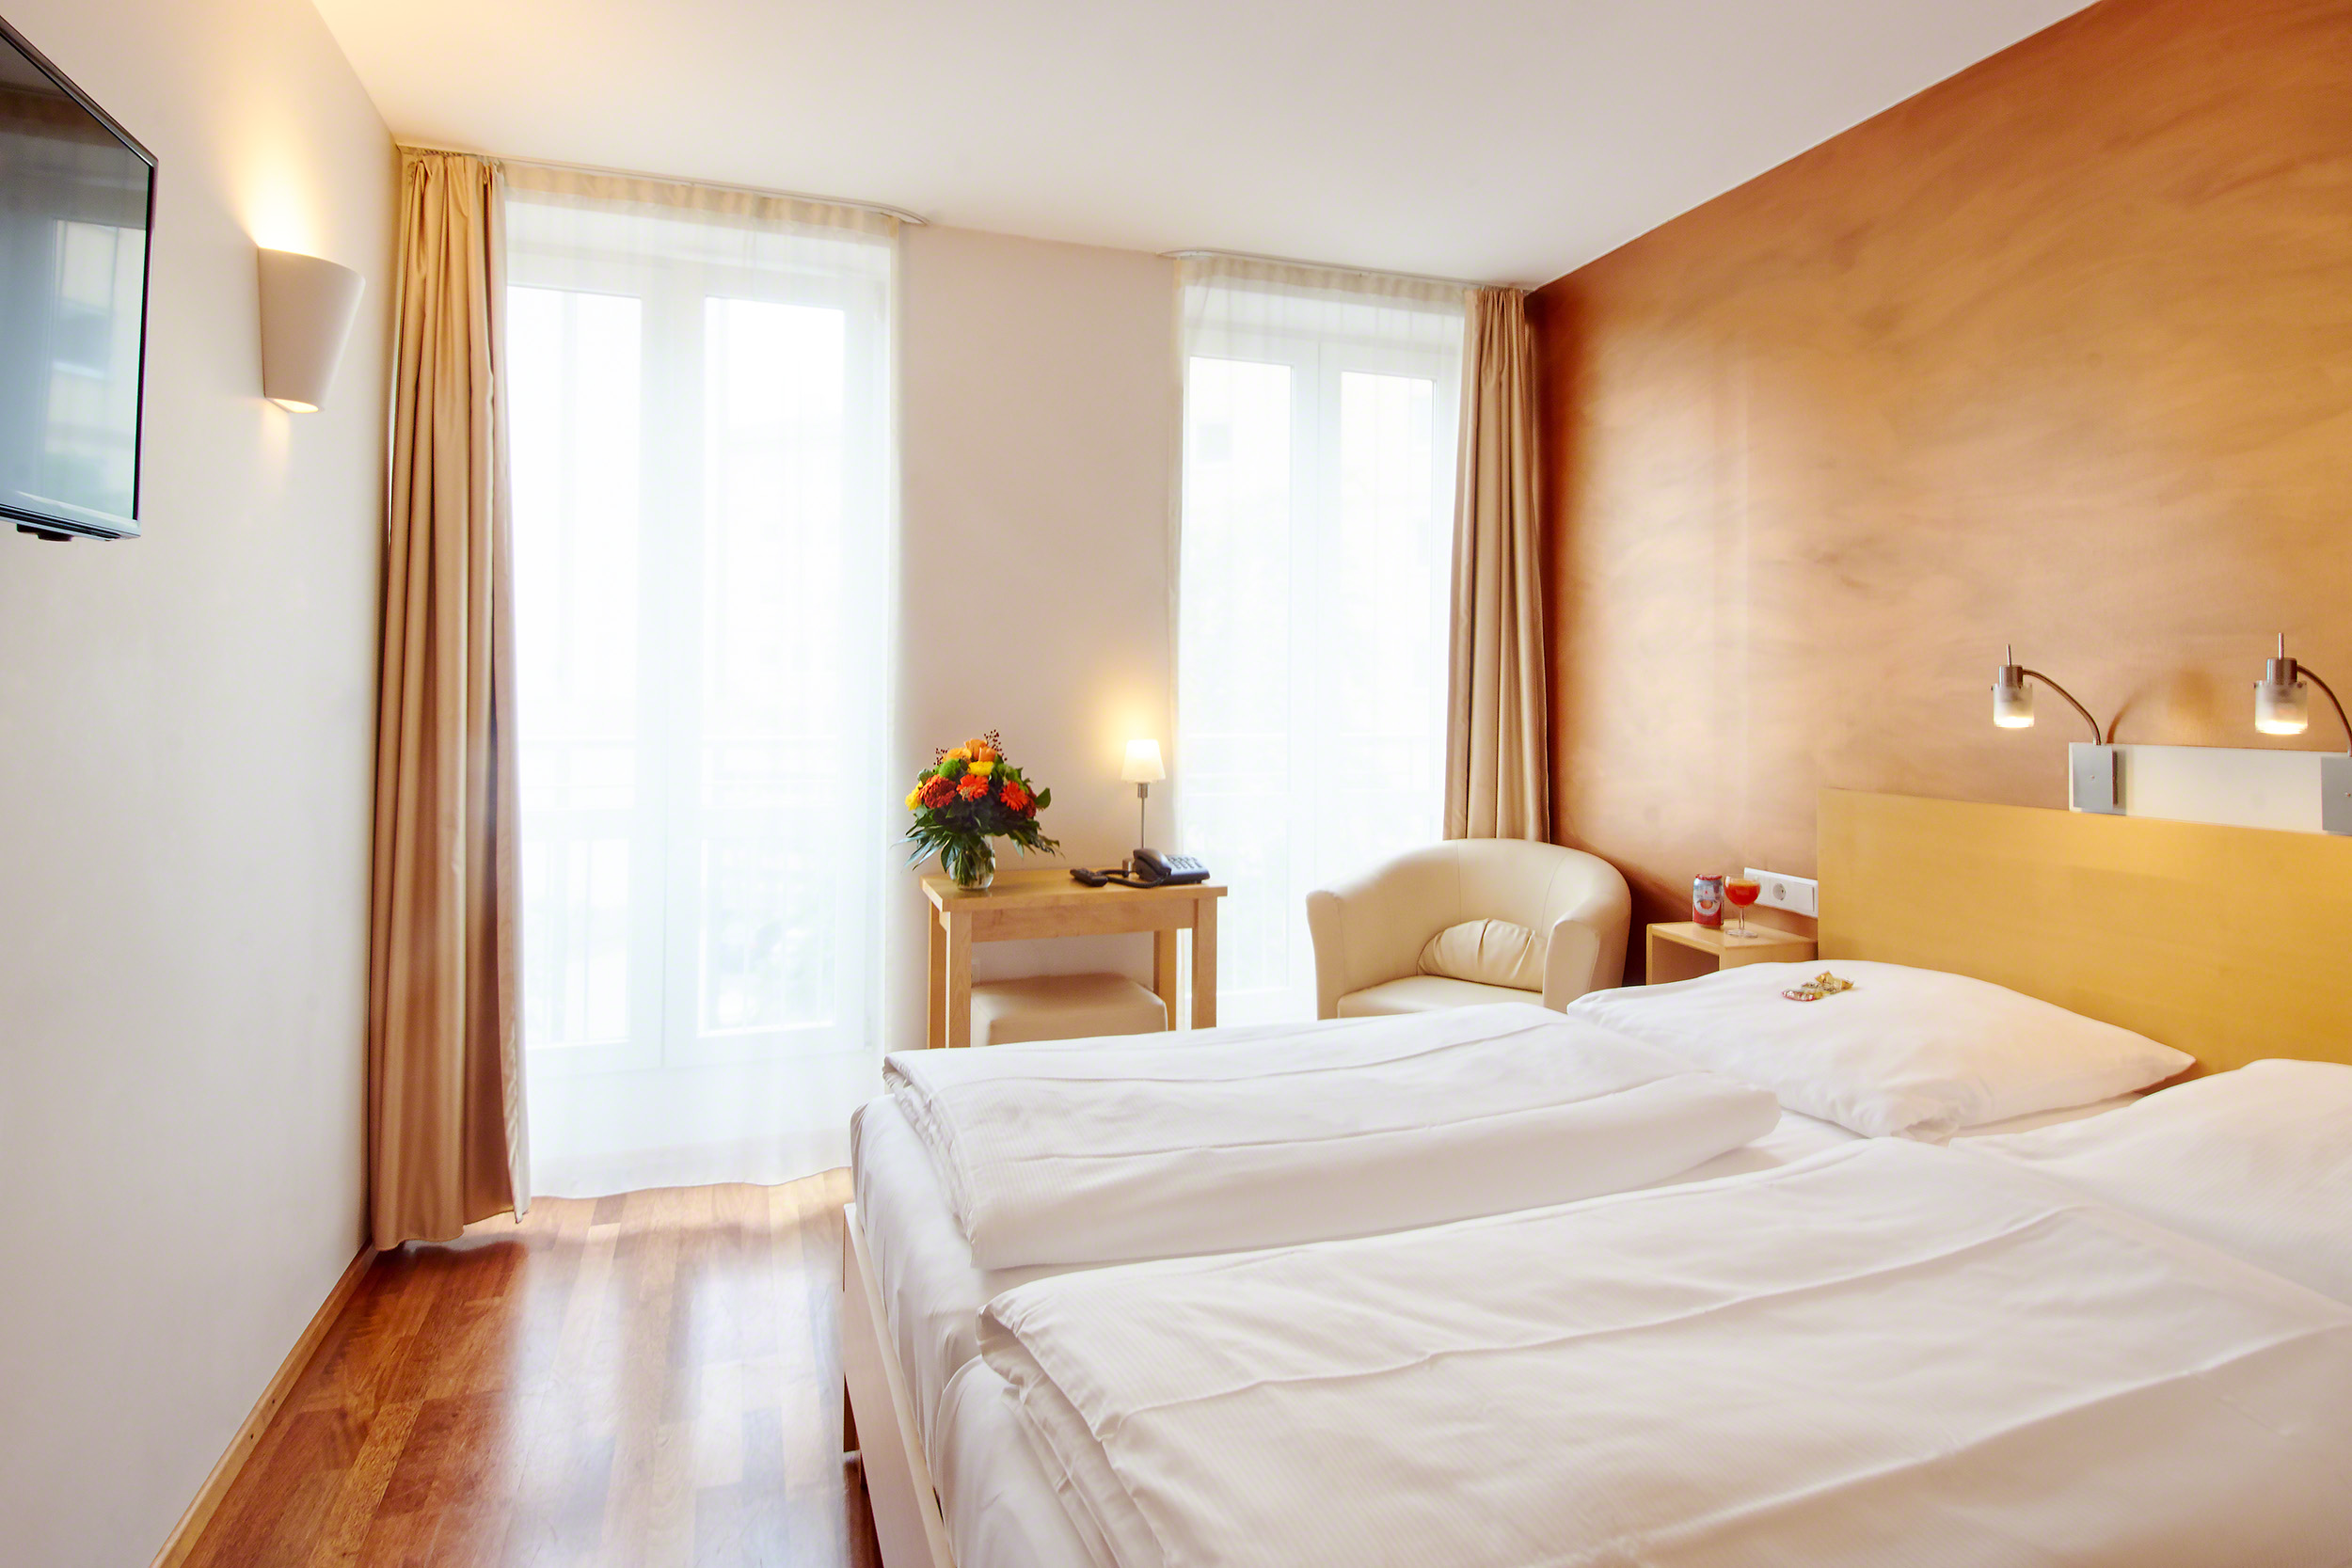 Town hotel wiesbaden hotels hotels restaurants for Design hotel taunus